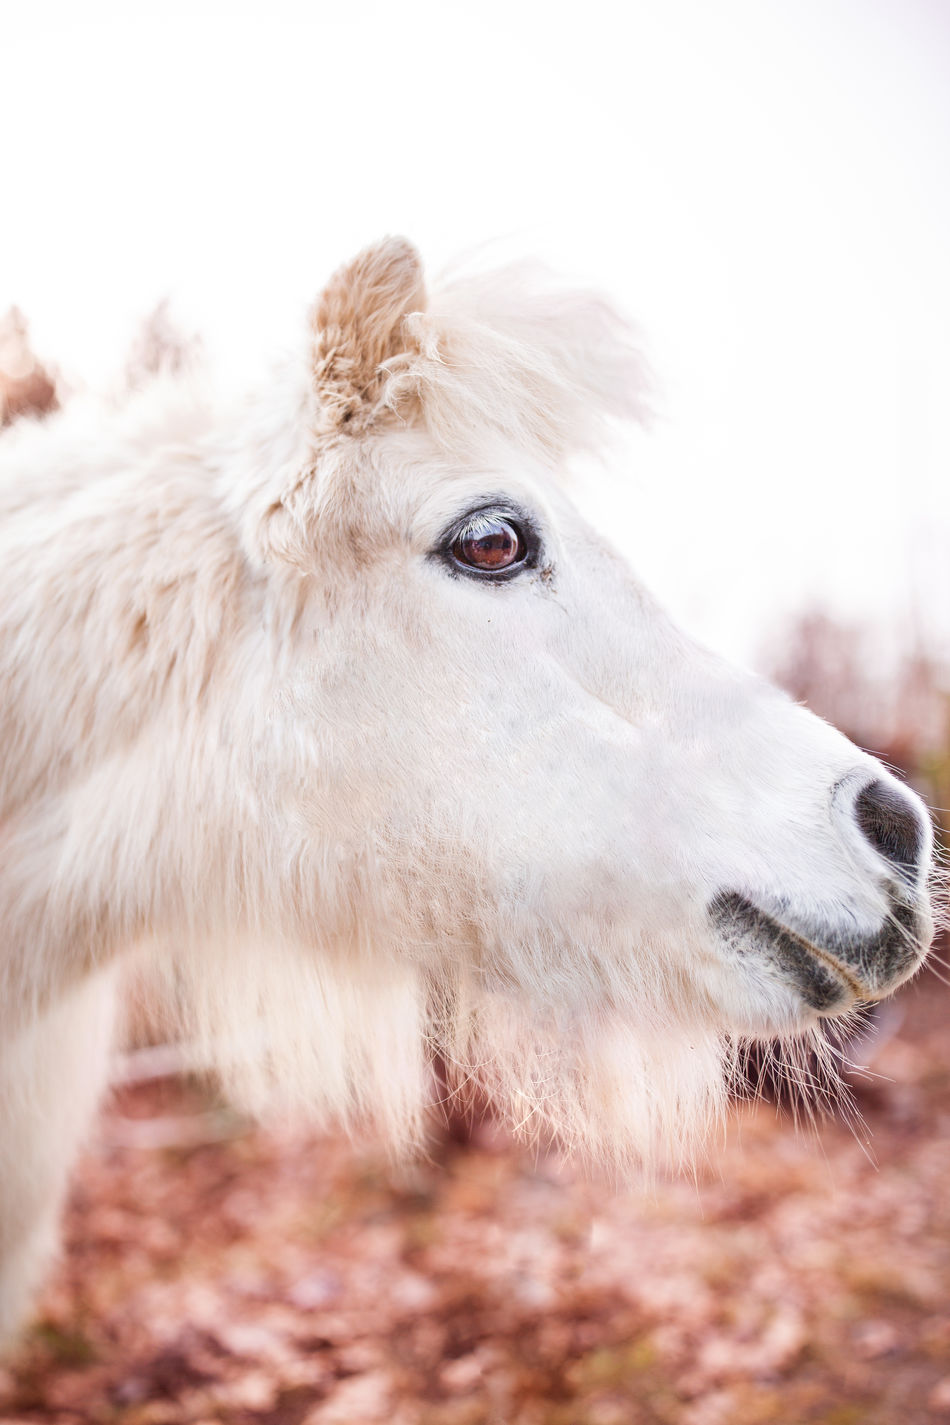 Agriculture Animal Themes Close-up Equinephotography Horse Nature No People One Animal Pony Shetland Pony